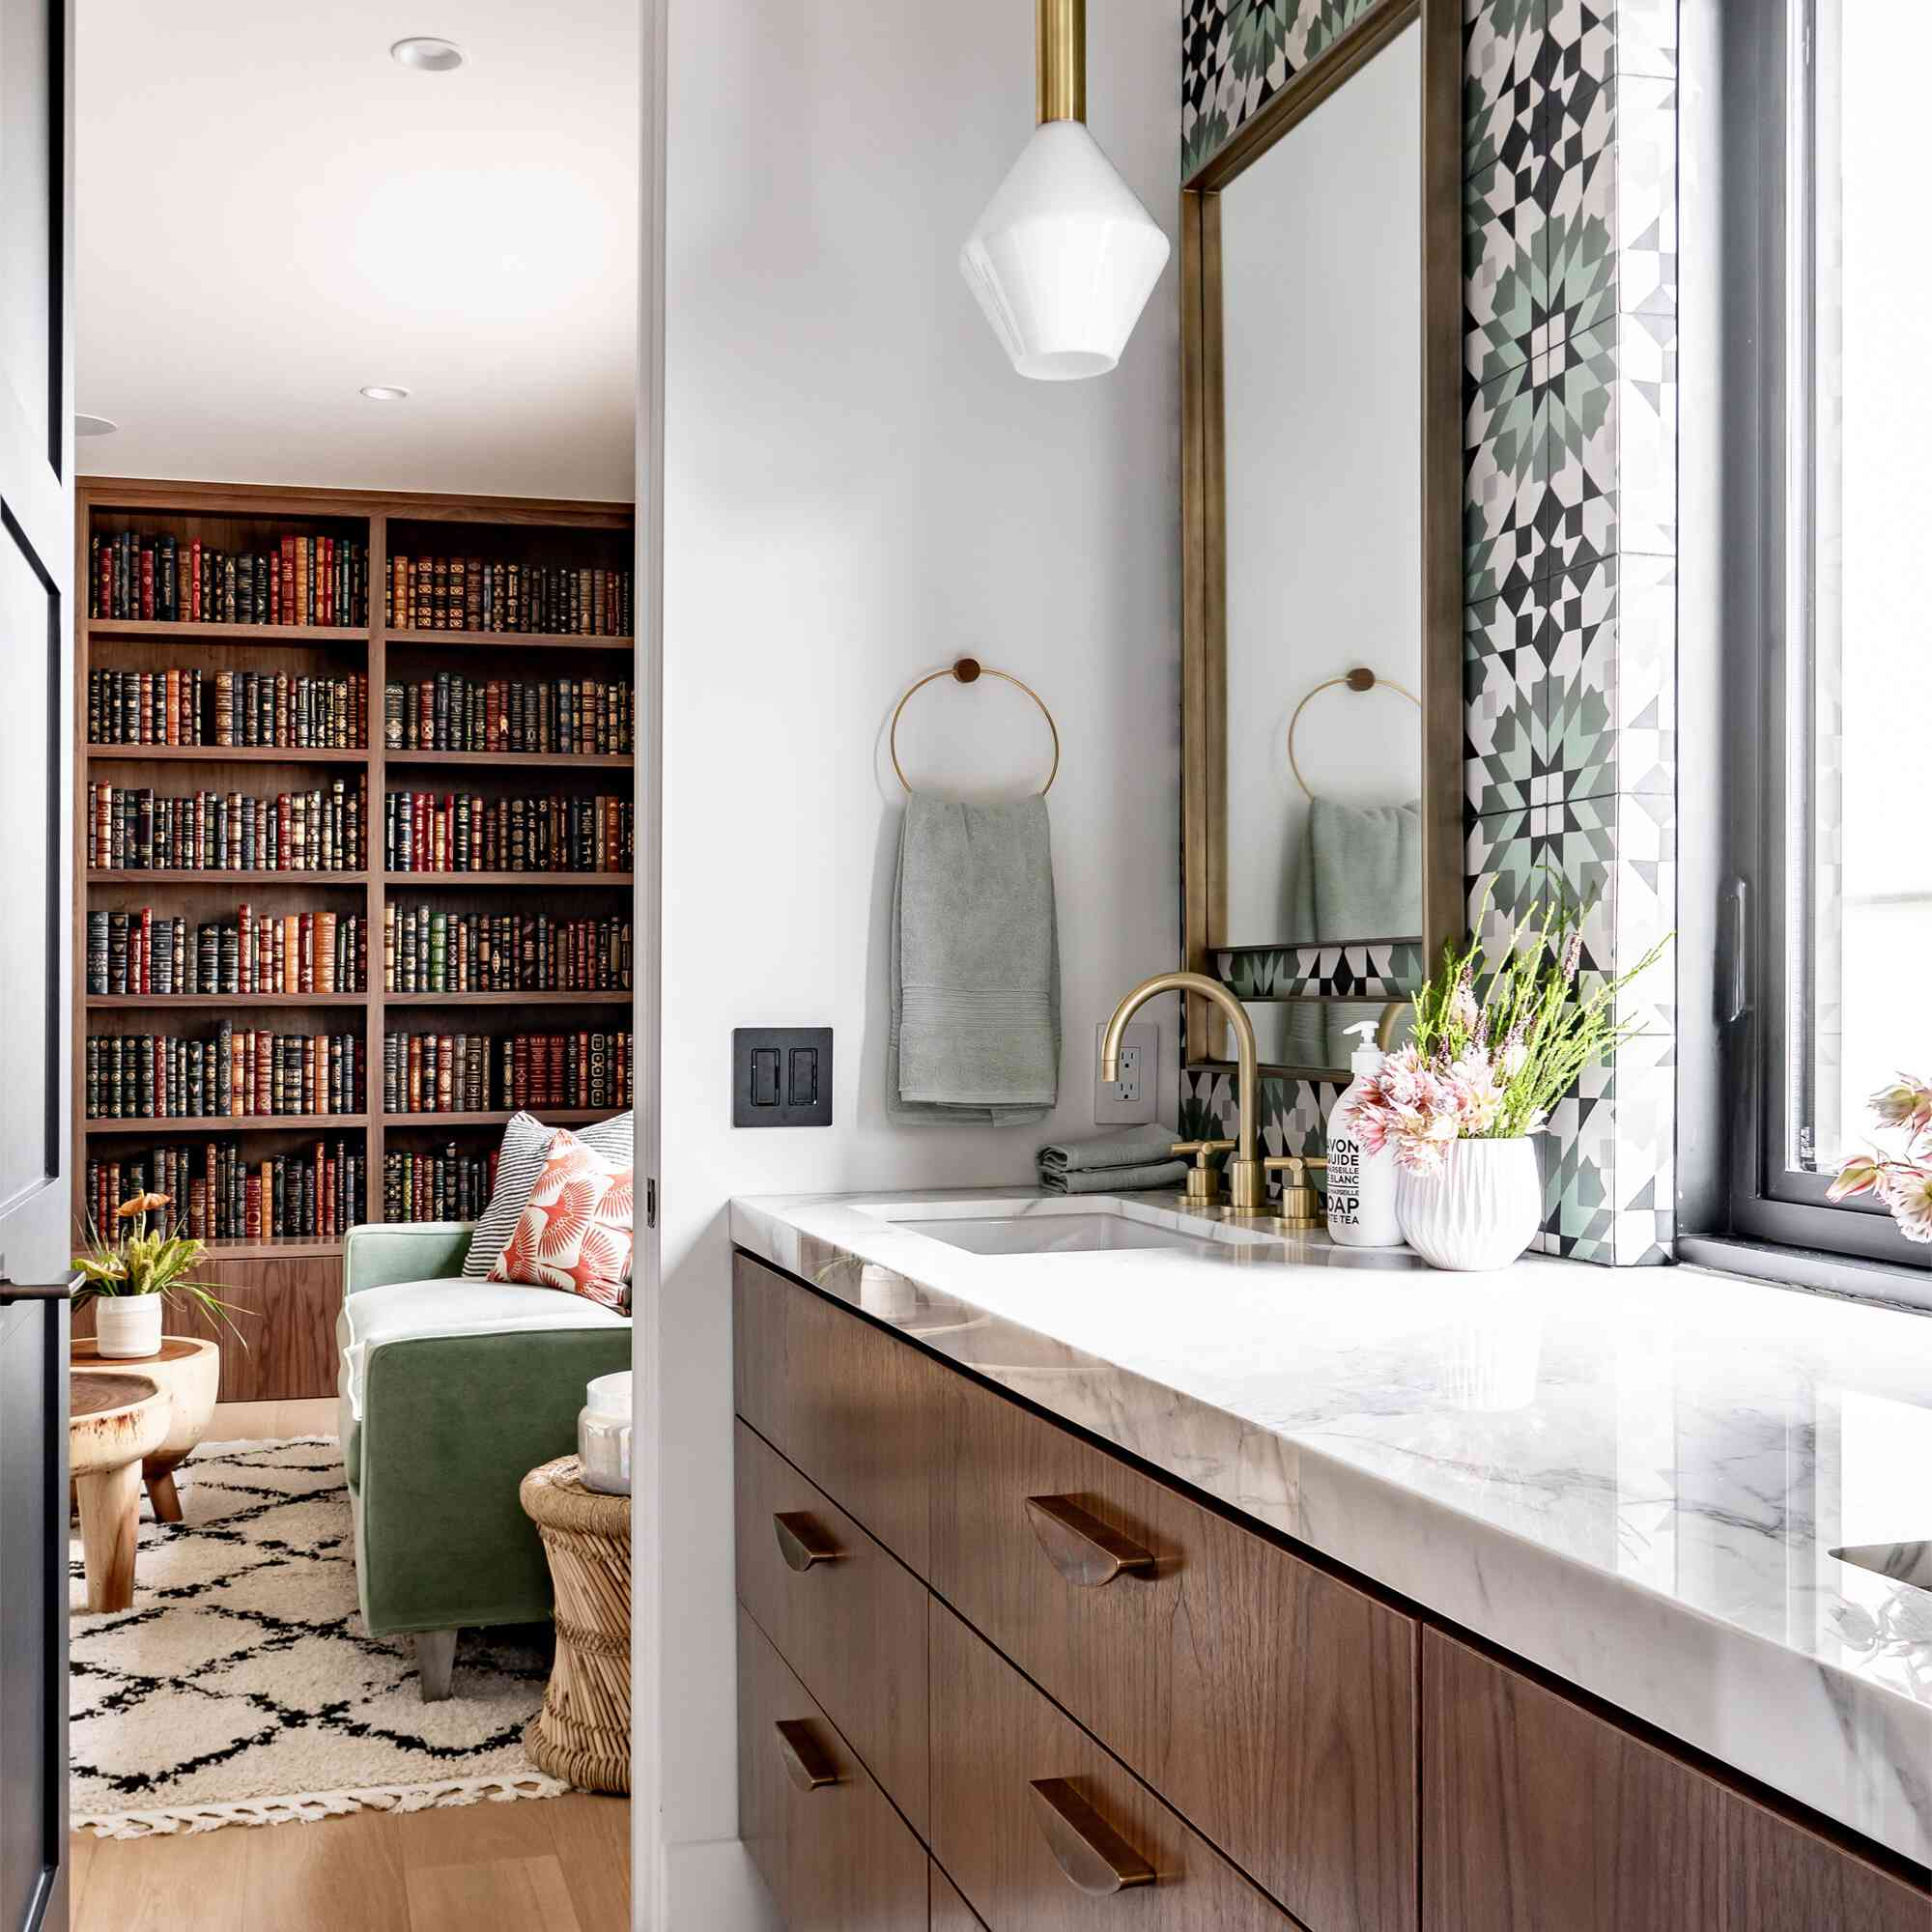 Modern bathroom with graphic tile and a view into a library room